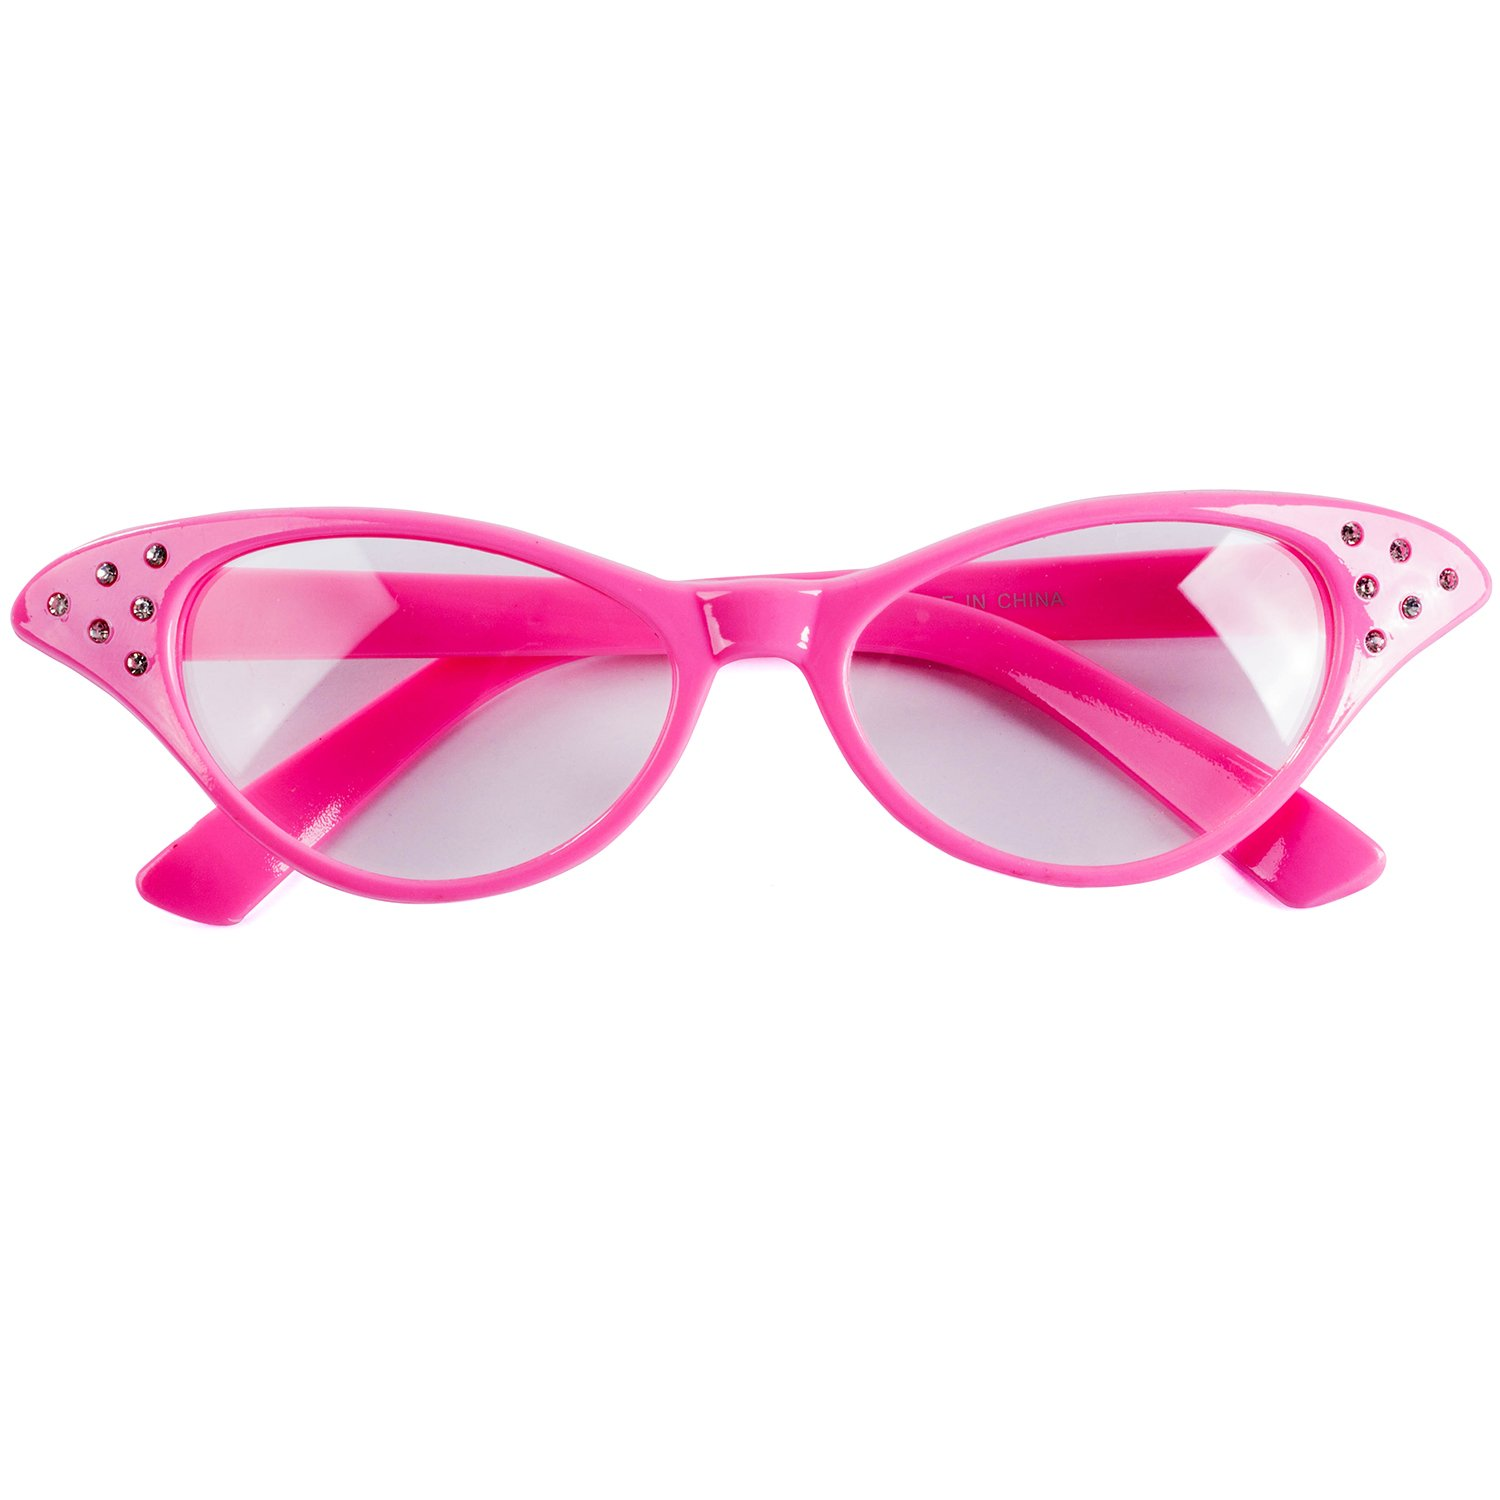 ab4b2c146b Funny Party Hats Pink Cat Eye Glasses - Pink Ladies - Grease Costume - 50s  Costumes for Women - 50 s   60 s ...